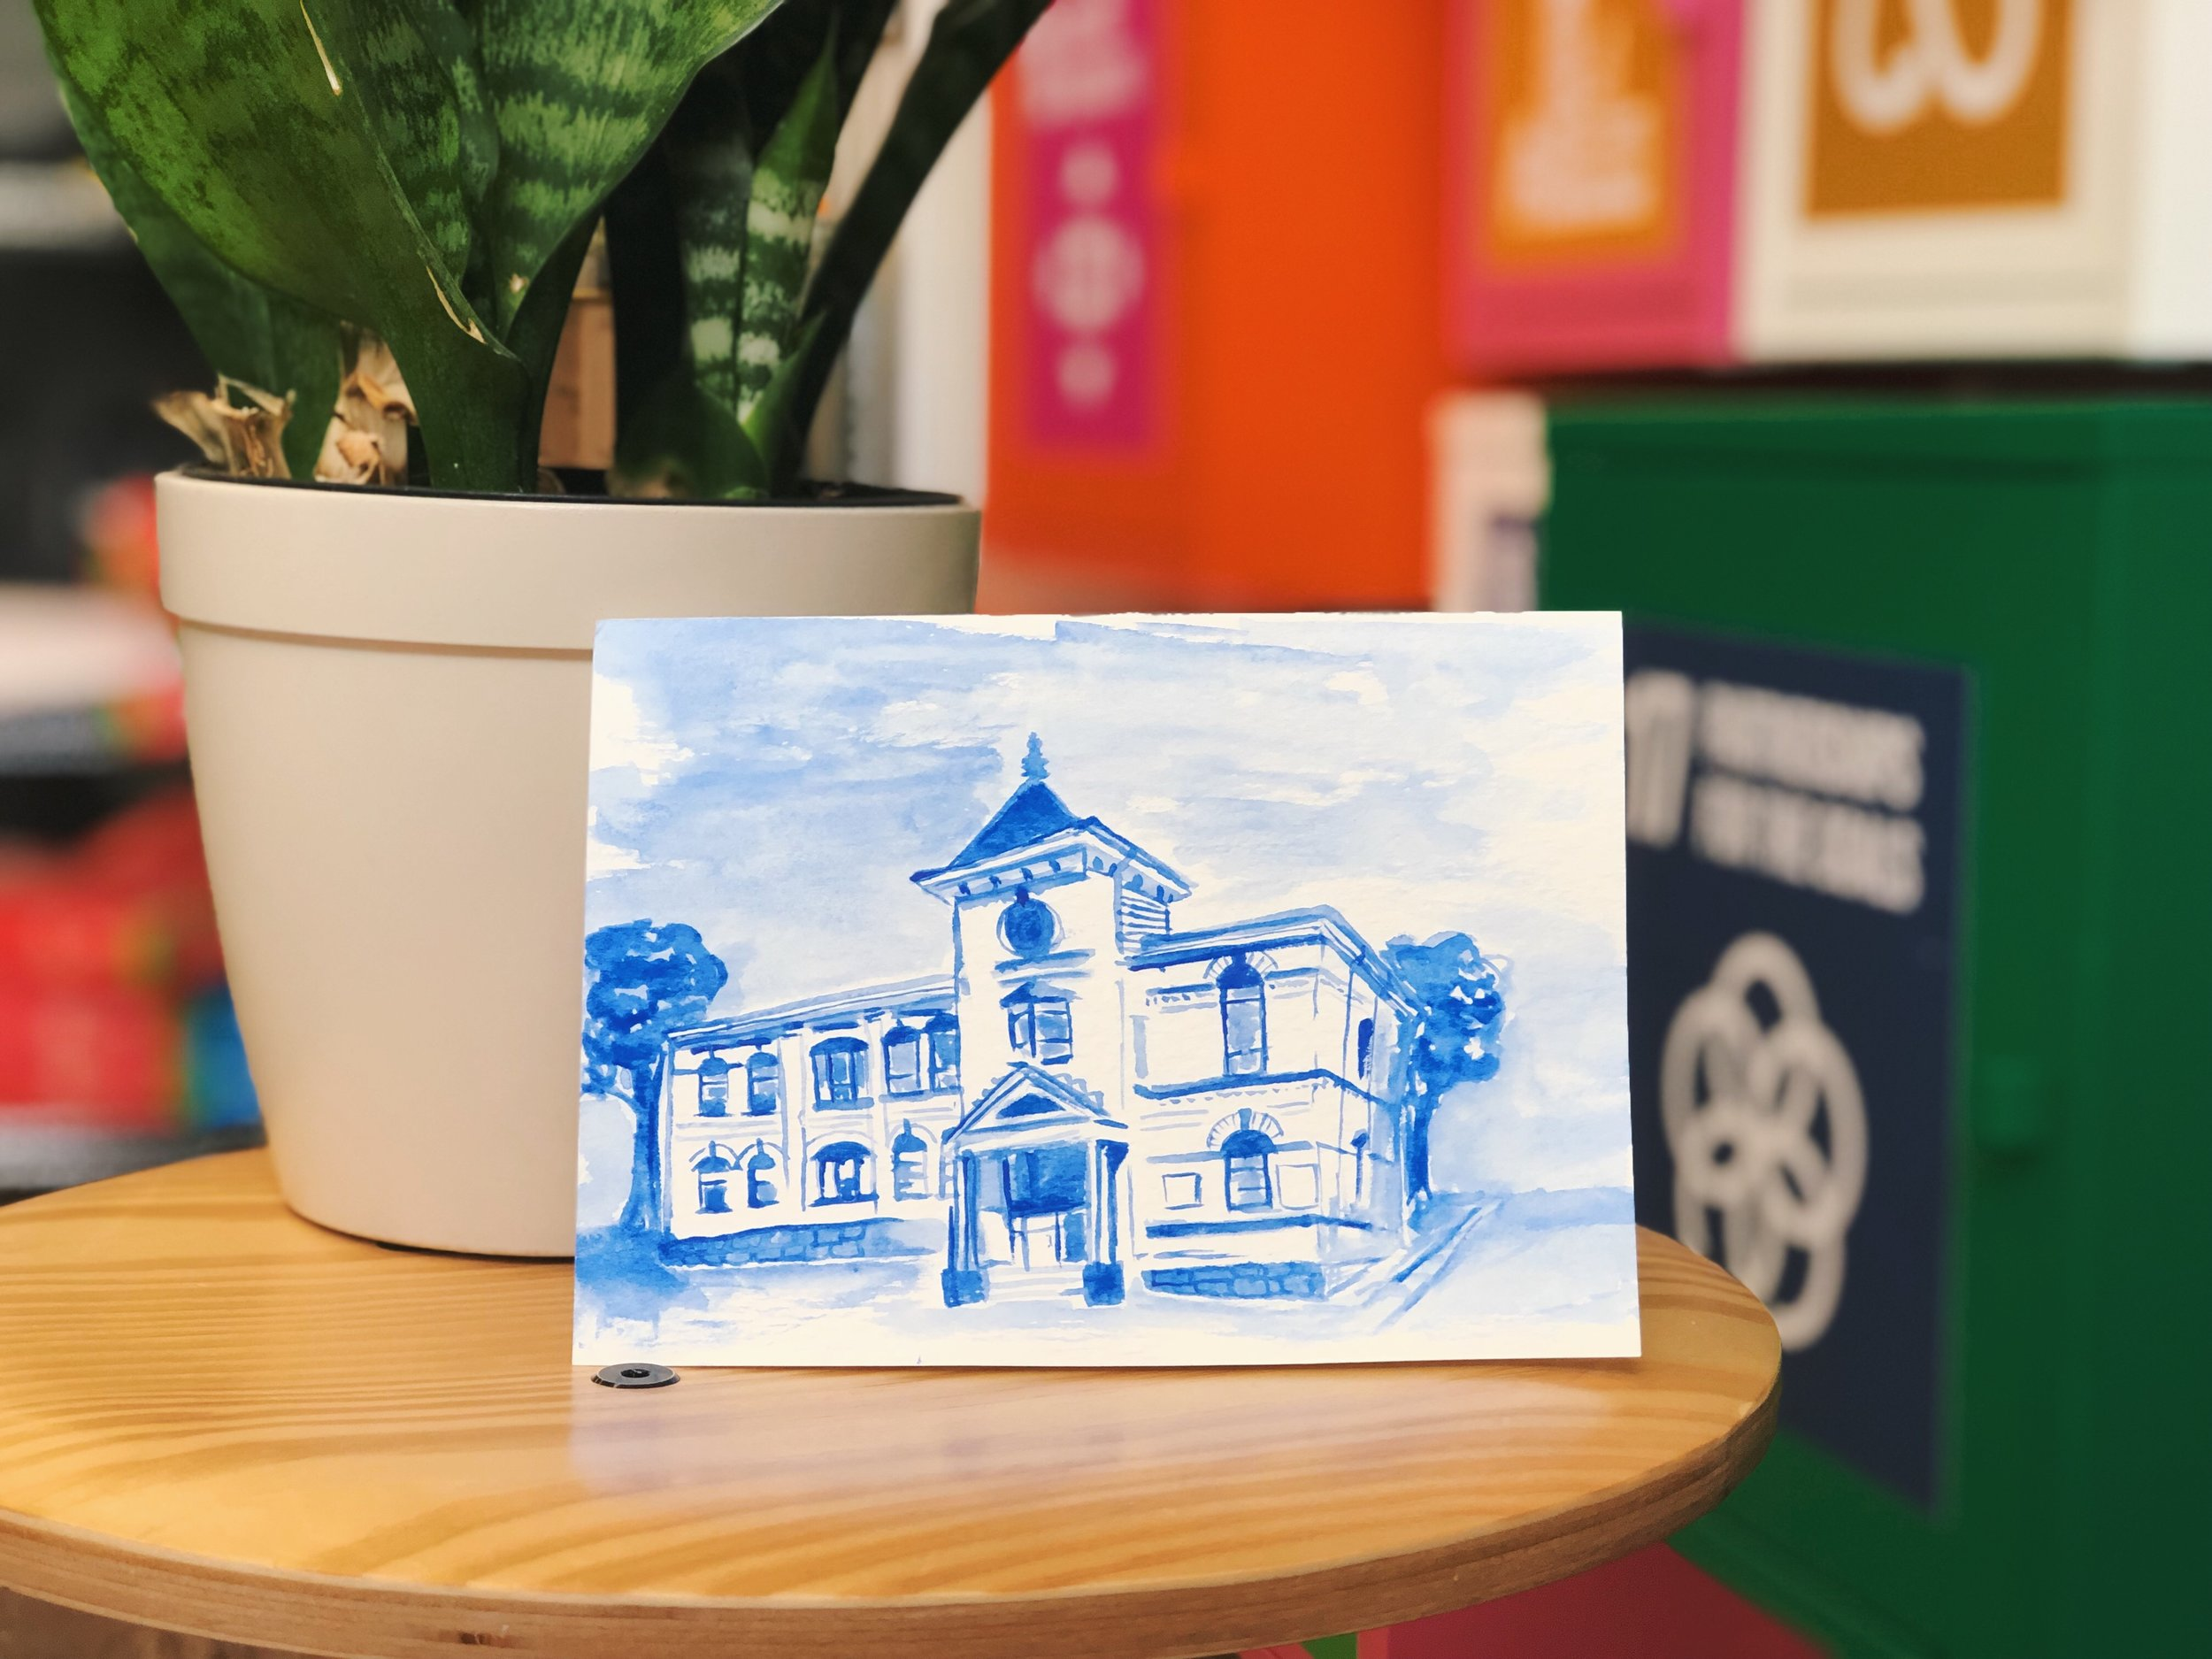 Thanks to Maggie Miland for this lovely painting of our office!